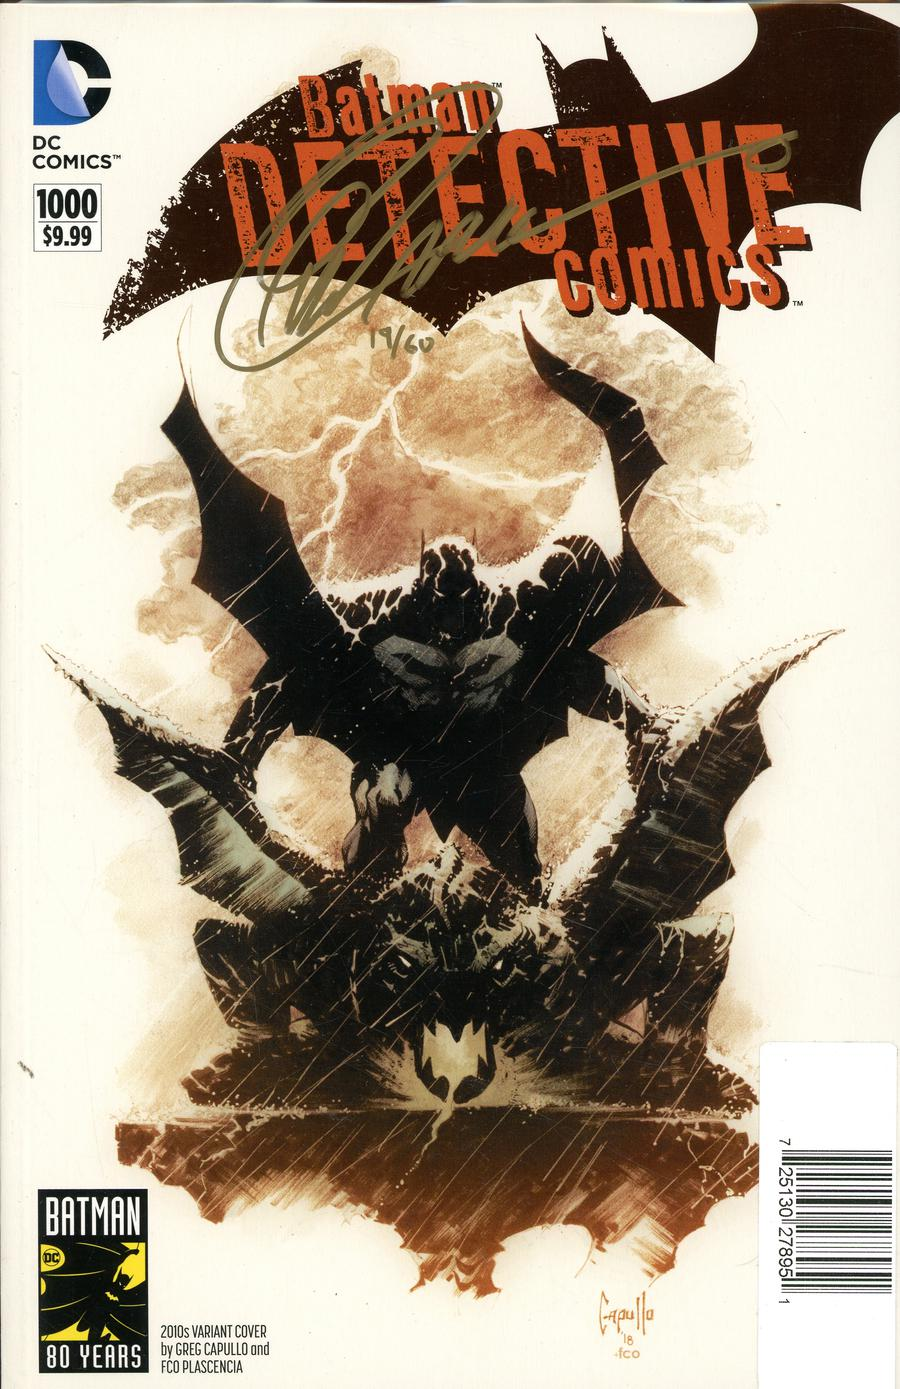 Detective Comics Vol 2 #1000 Cover Y DF Greg Capullo 2010s Variant Cover Gold Signature Series Signed By Greg Capullo